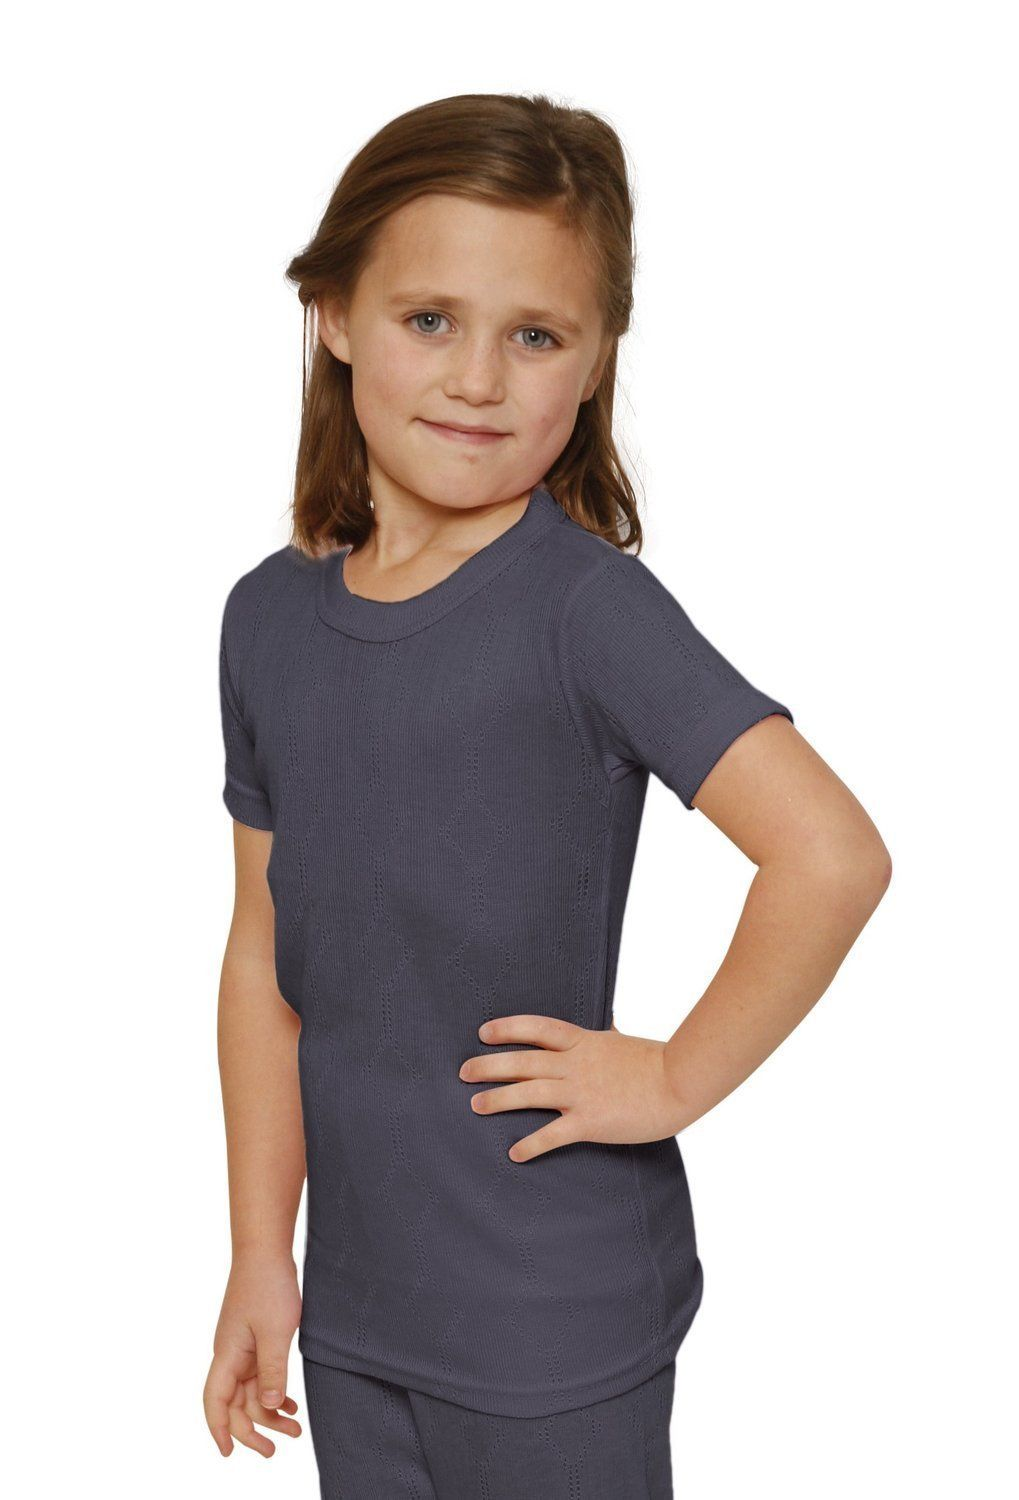 Octave® Girls Thermal Underwear Short-Sleeved Vest